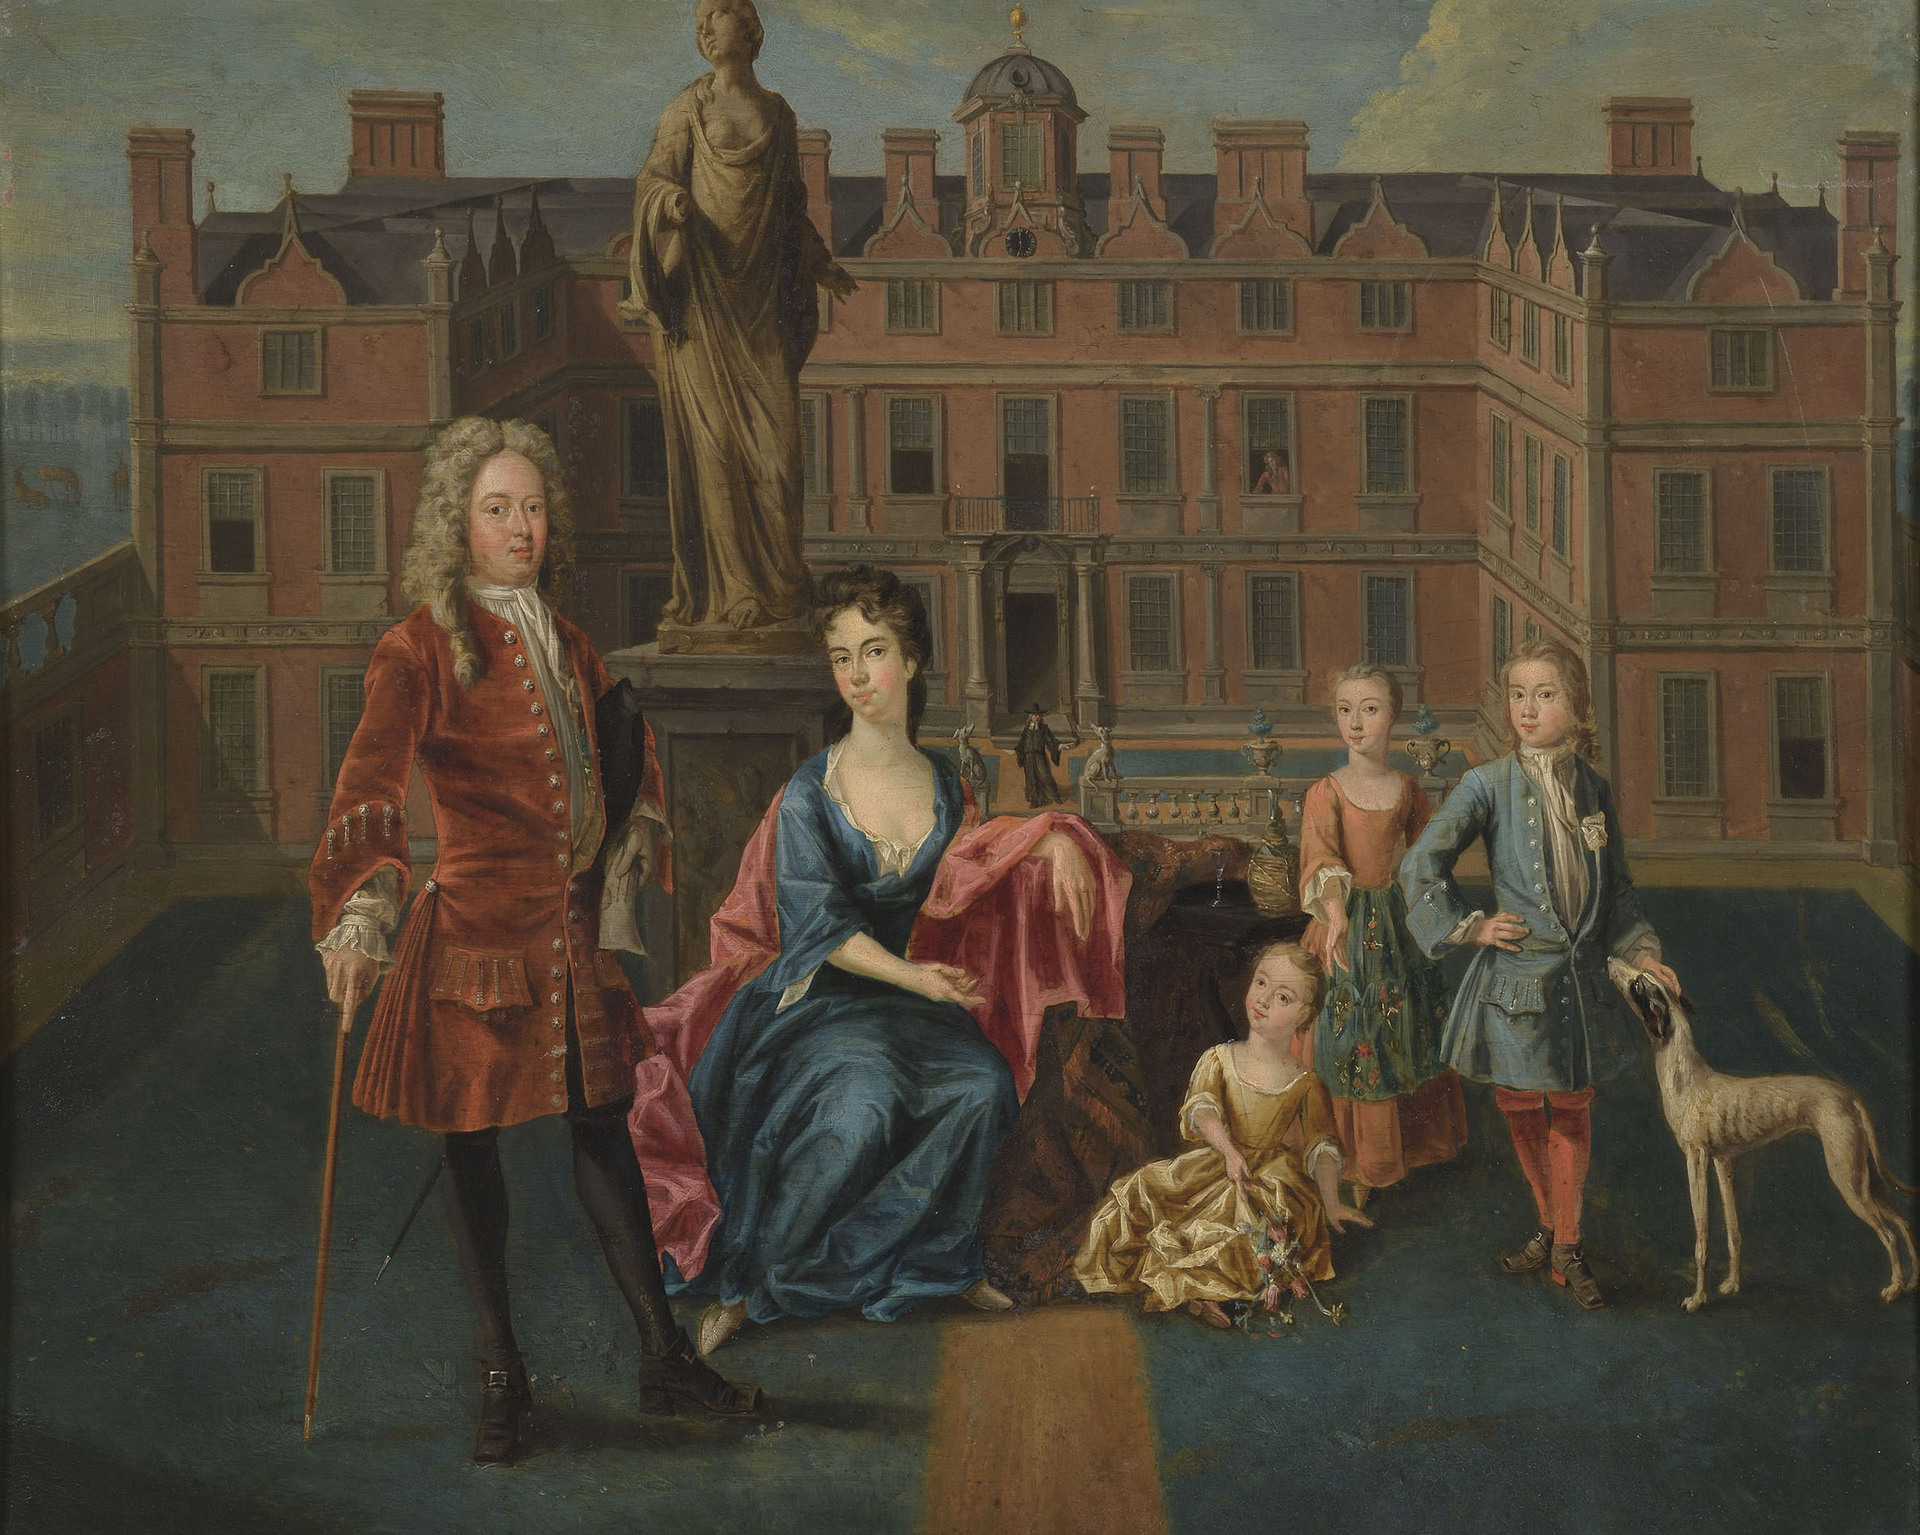 Unknown artist, The North Family at Glemham, 1715–16, oil on copper, Ipswich Borough Council Museums and Galleries, Suffolk, UK